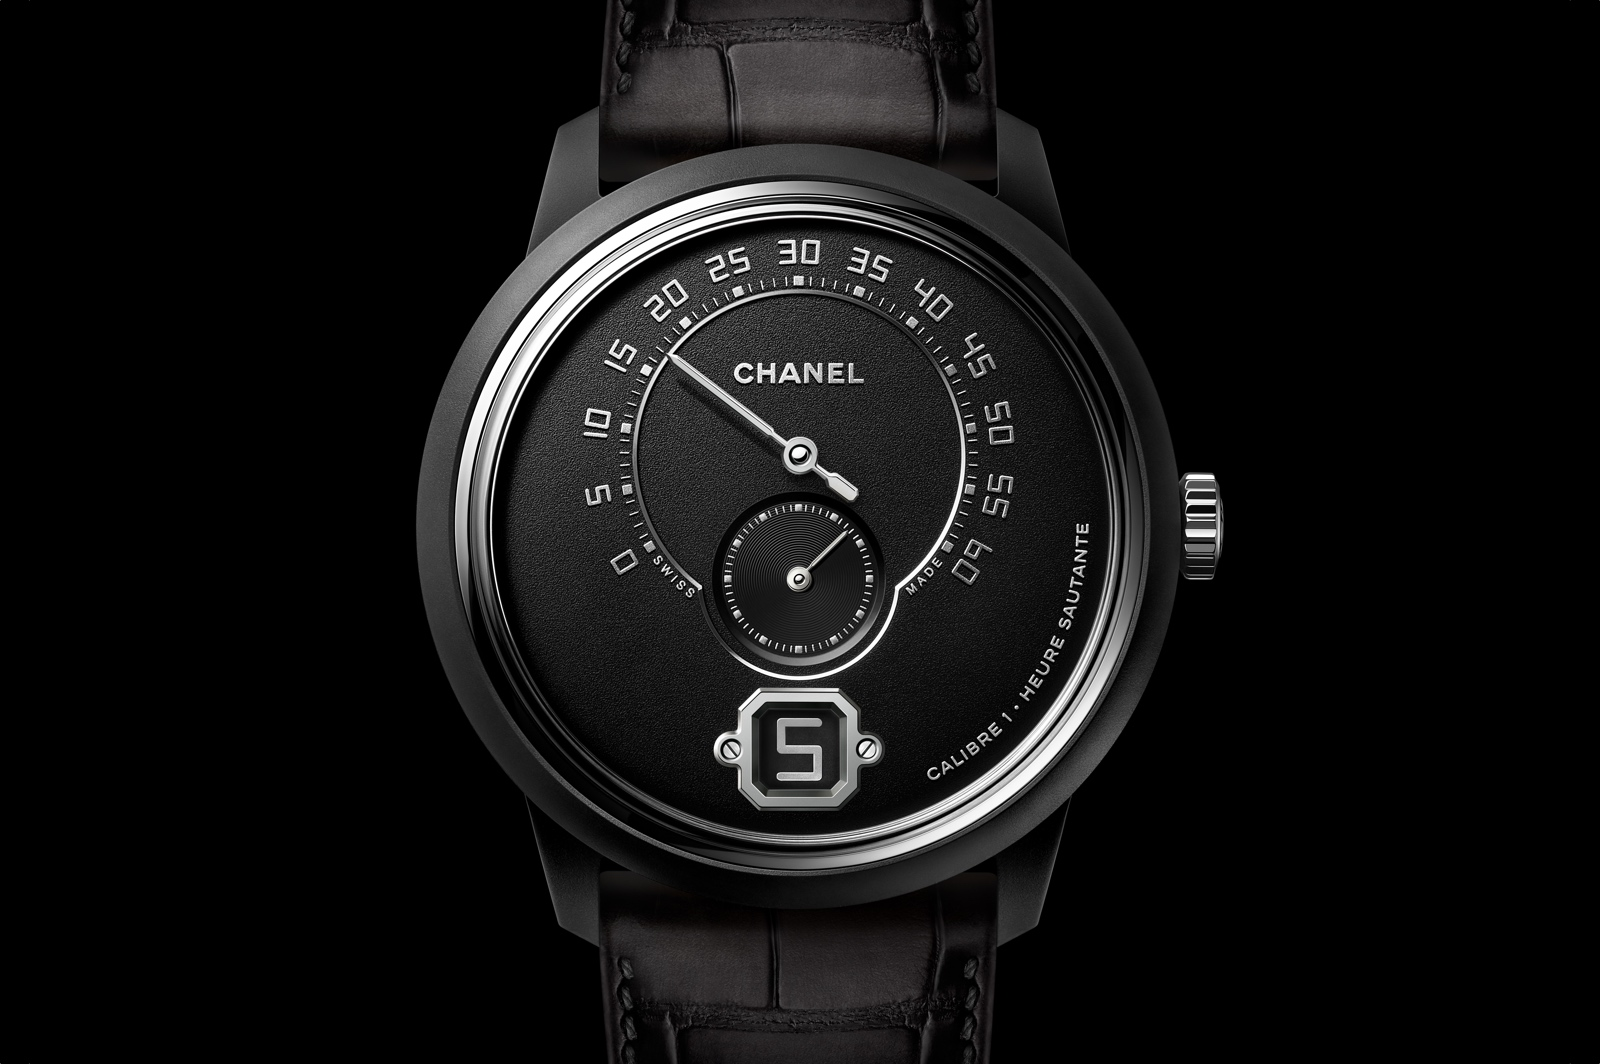 Pre-Baselworld 2019 de Chanel - Monsieur de Chanel Edition Noire